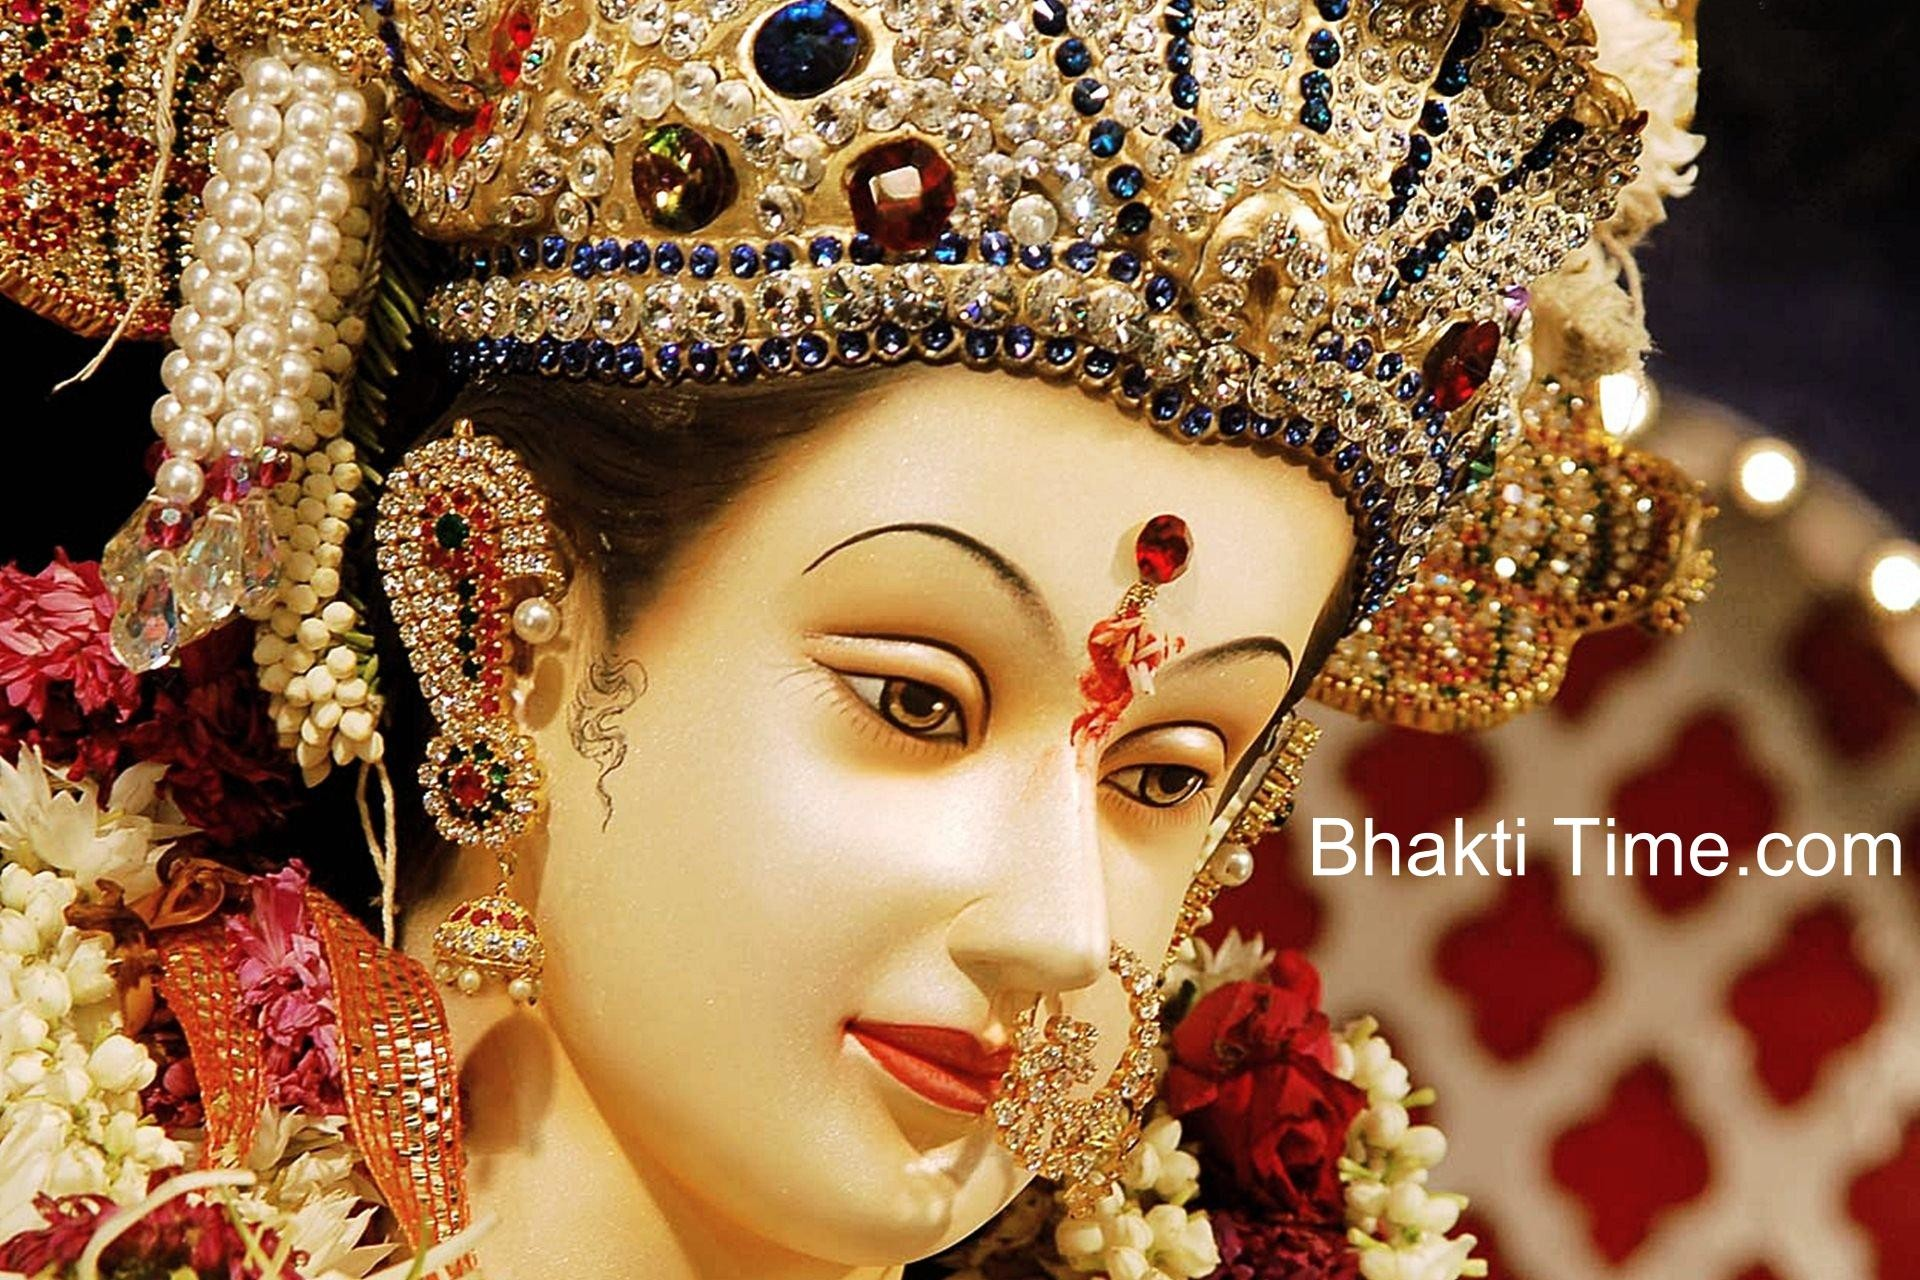 Simple Wallpaper Lord Durga - 441890  You Should Have_789743.jpg